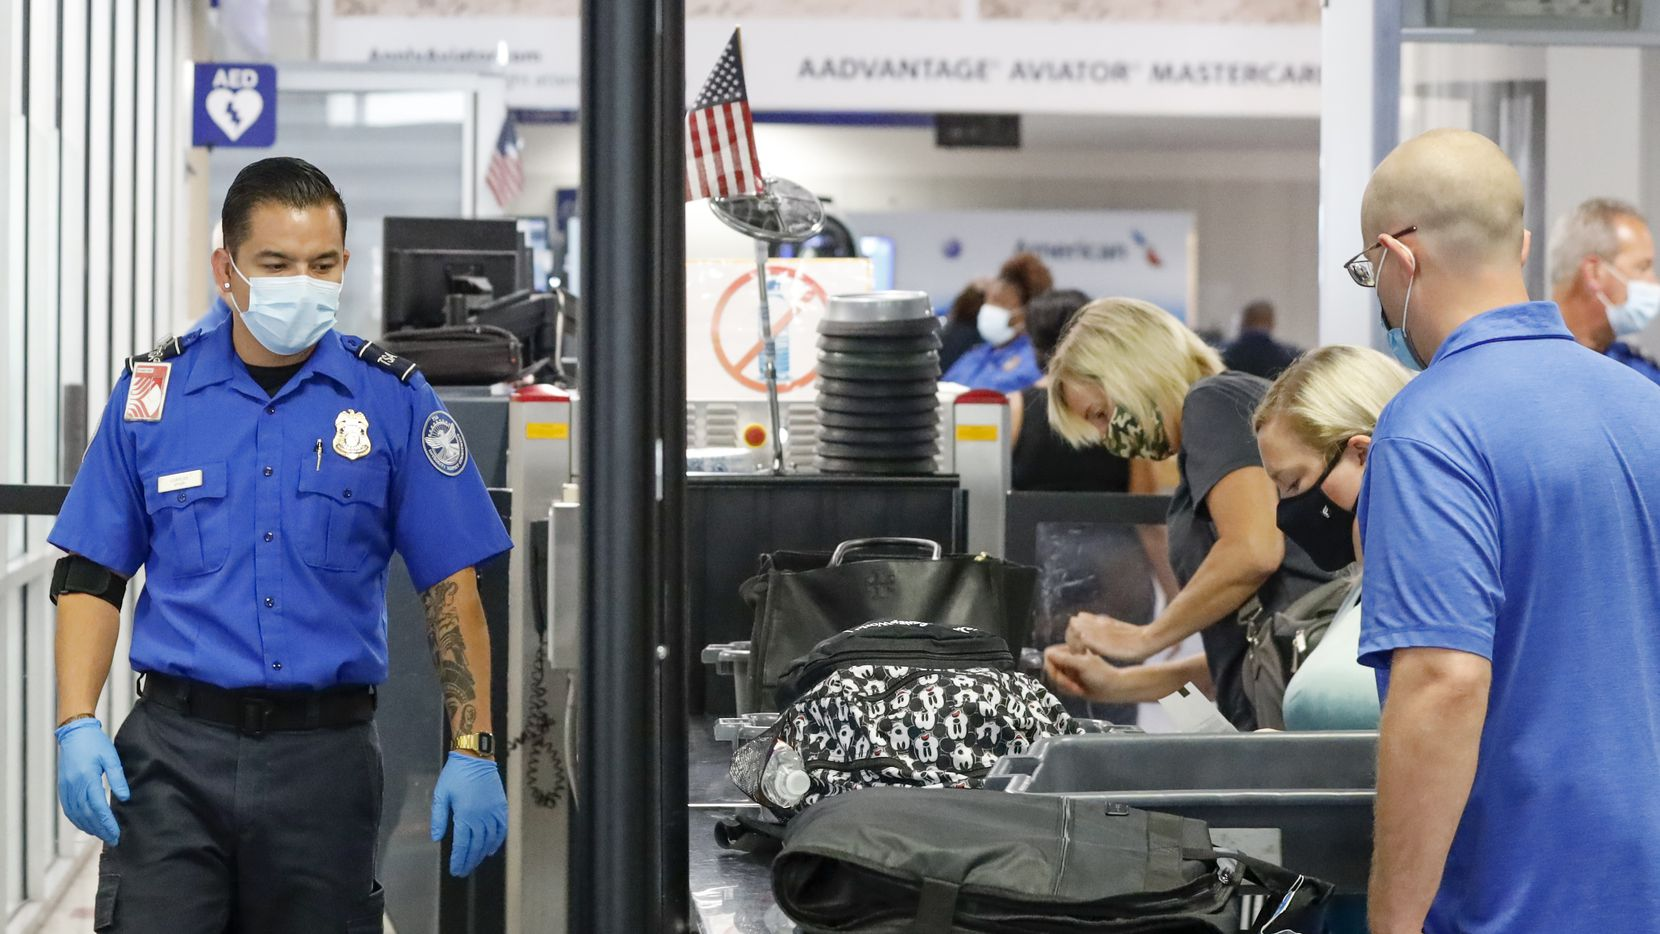 A Transportation Security Administration agent watches travelers place their belongings in containers at a security checkpoint at DFW International Airport on Sept. 2.